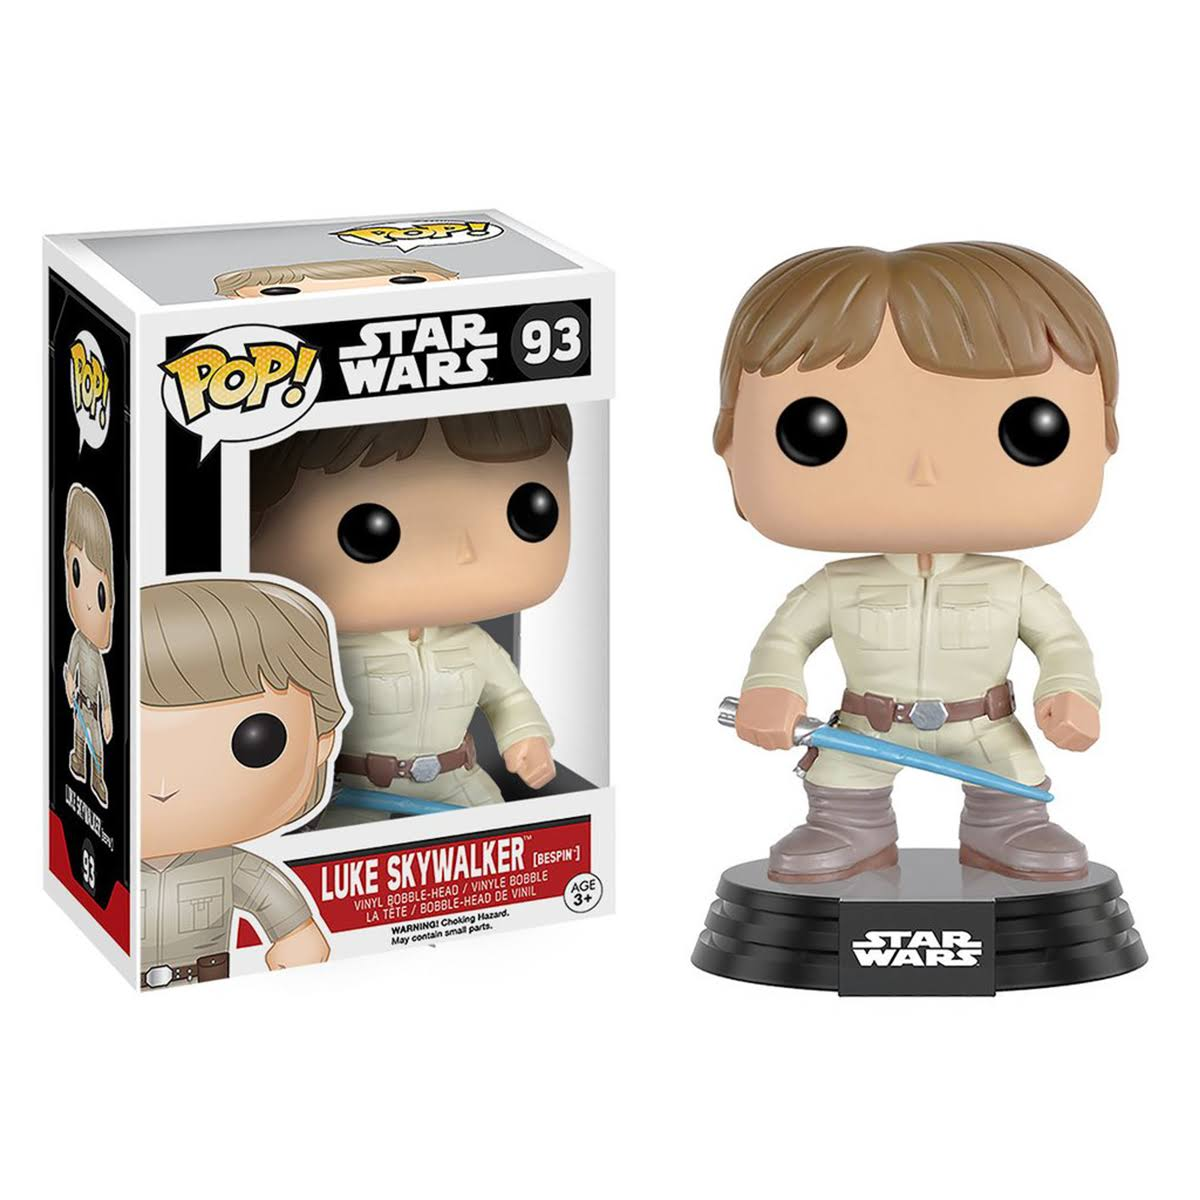 Funko Pop! Star Wars Vinyl Figurine - Luke Skywalker, 10cm